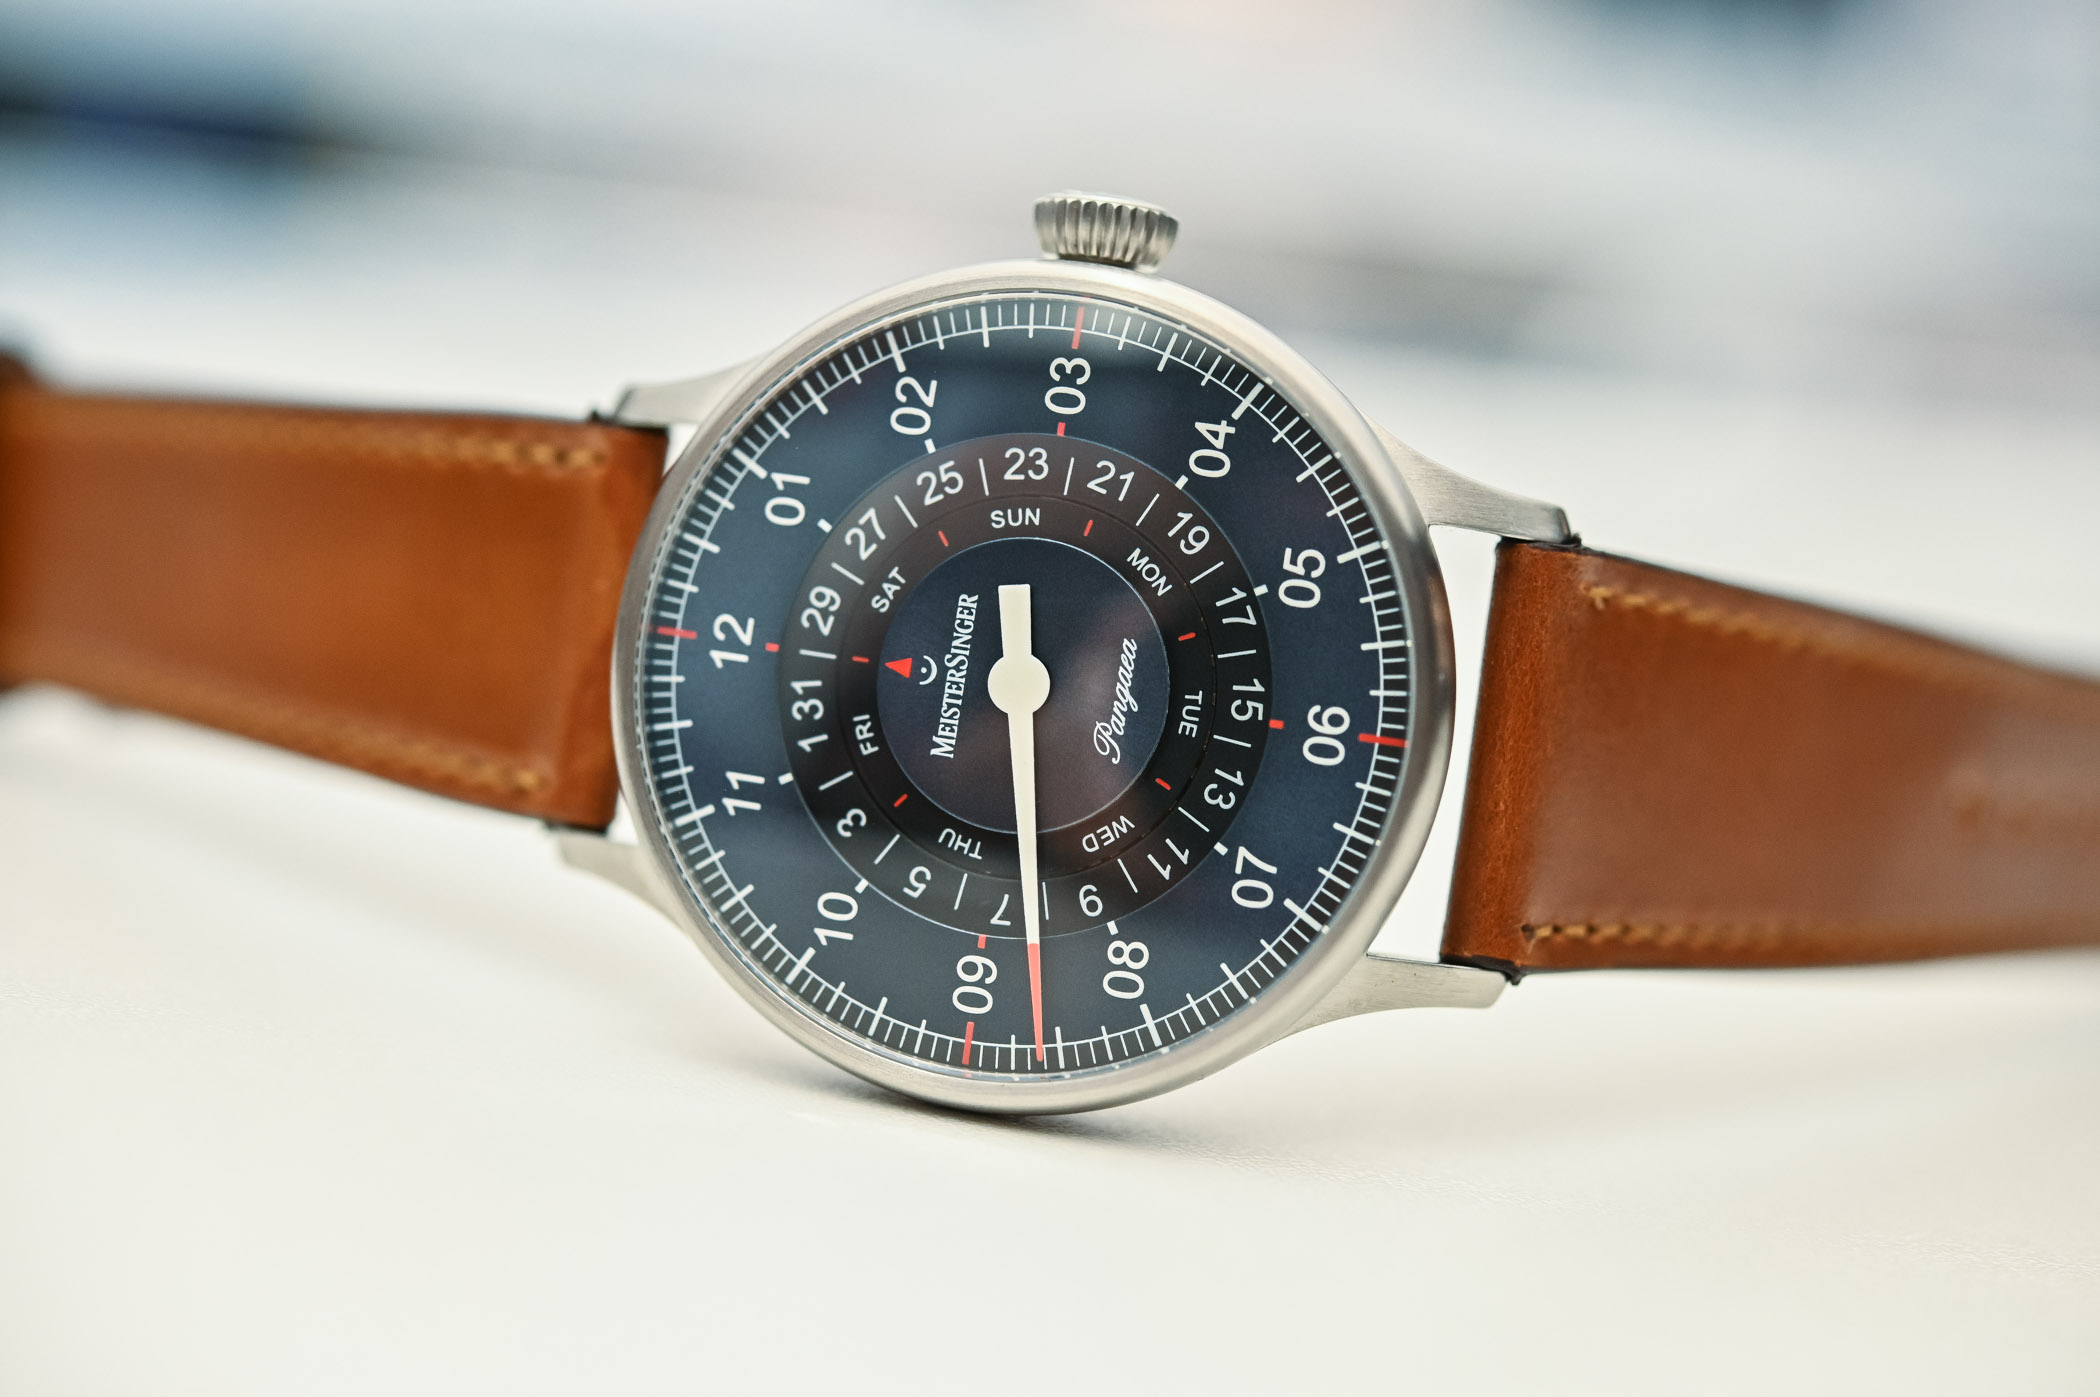 2019 Redesigned MeisterSinger Pangaea Day-Date